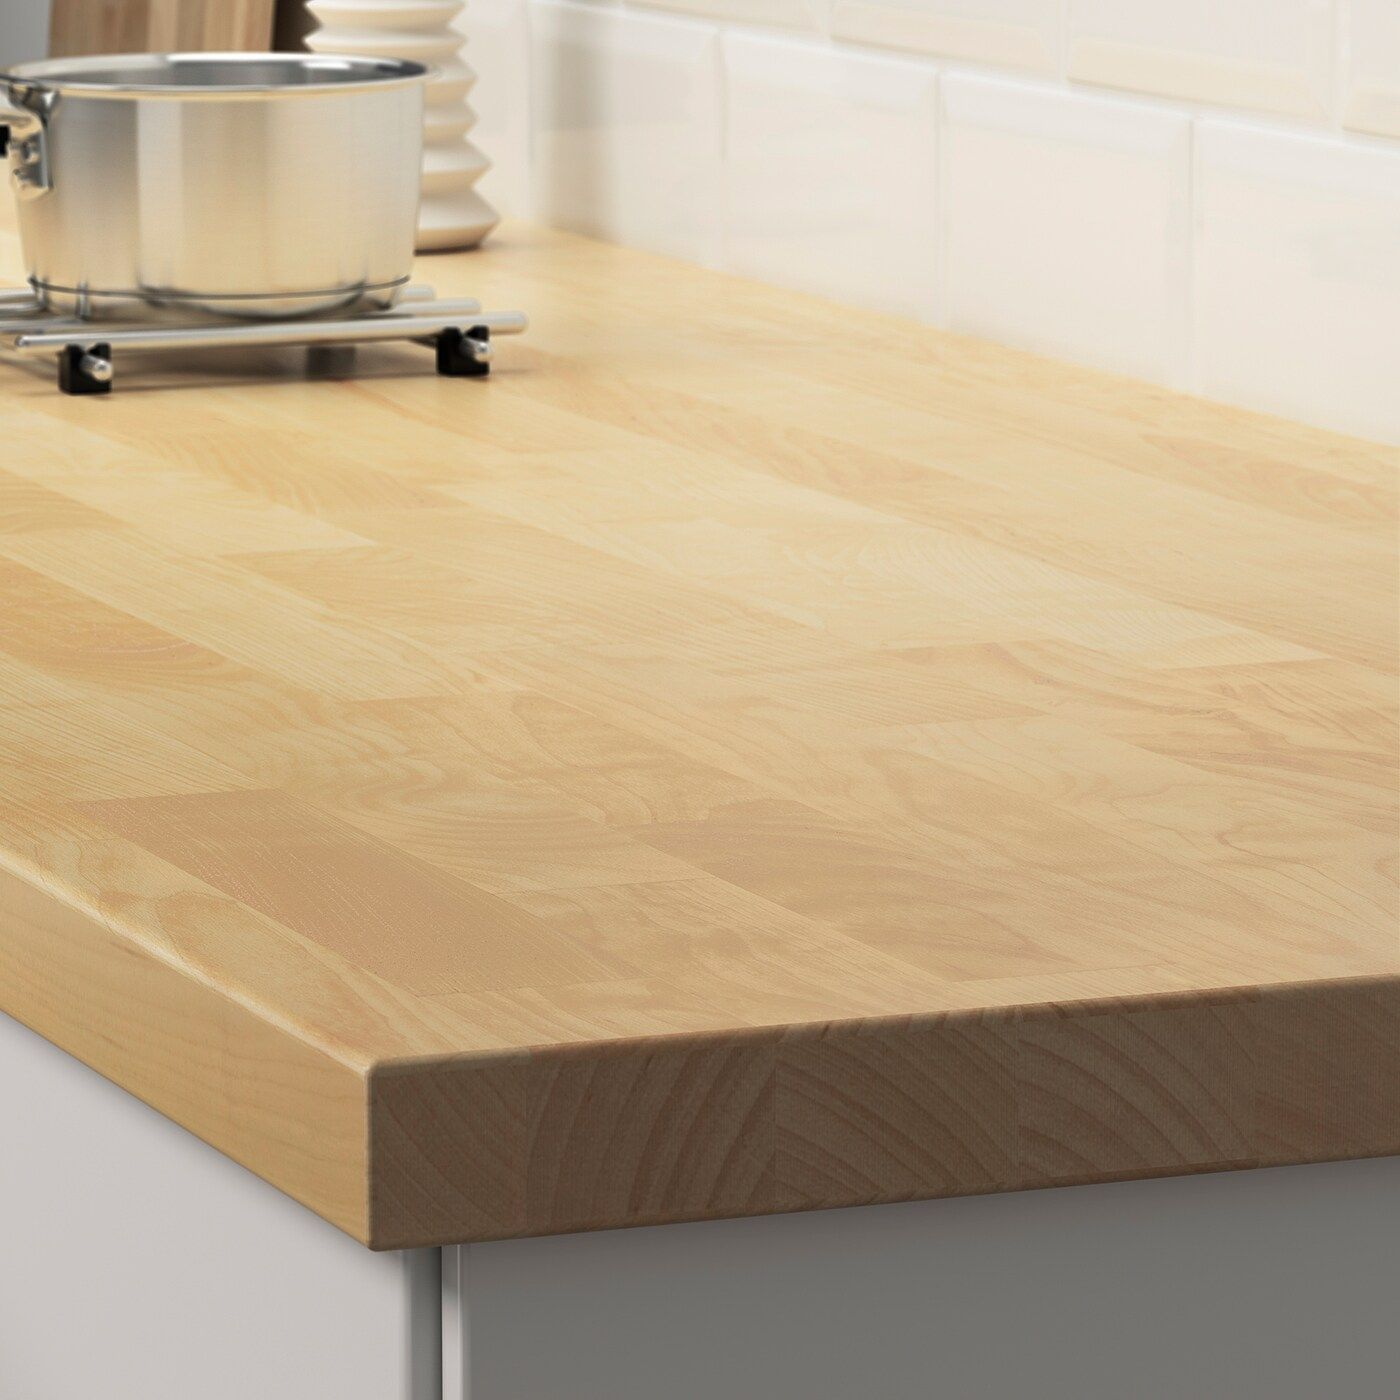 Ikea Karlby Countertop Birch Veneer In 2020 Karlby Countertop